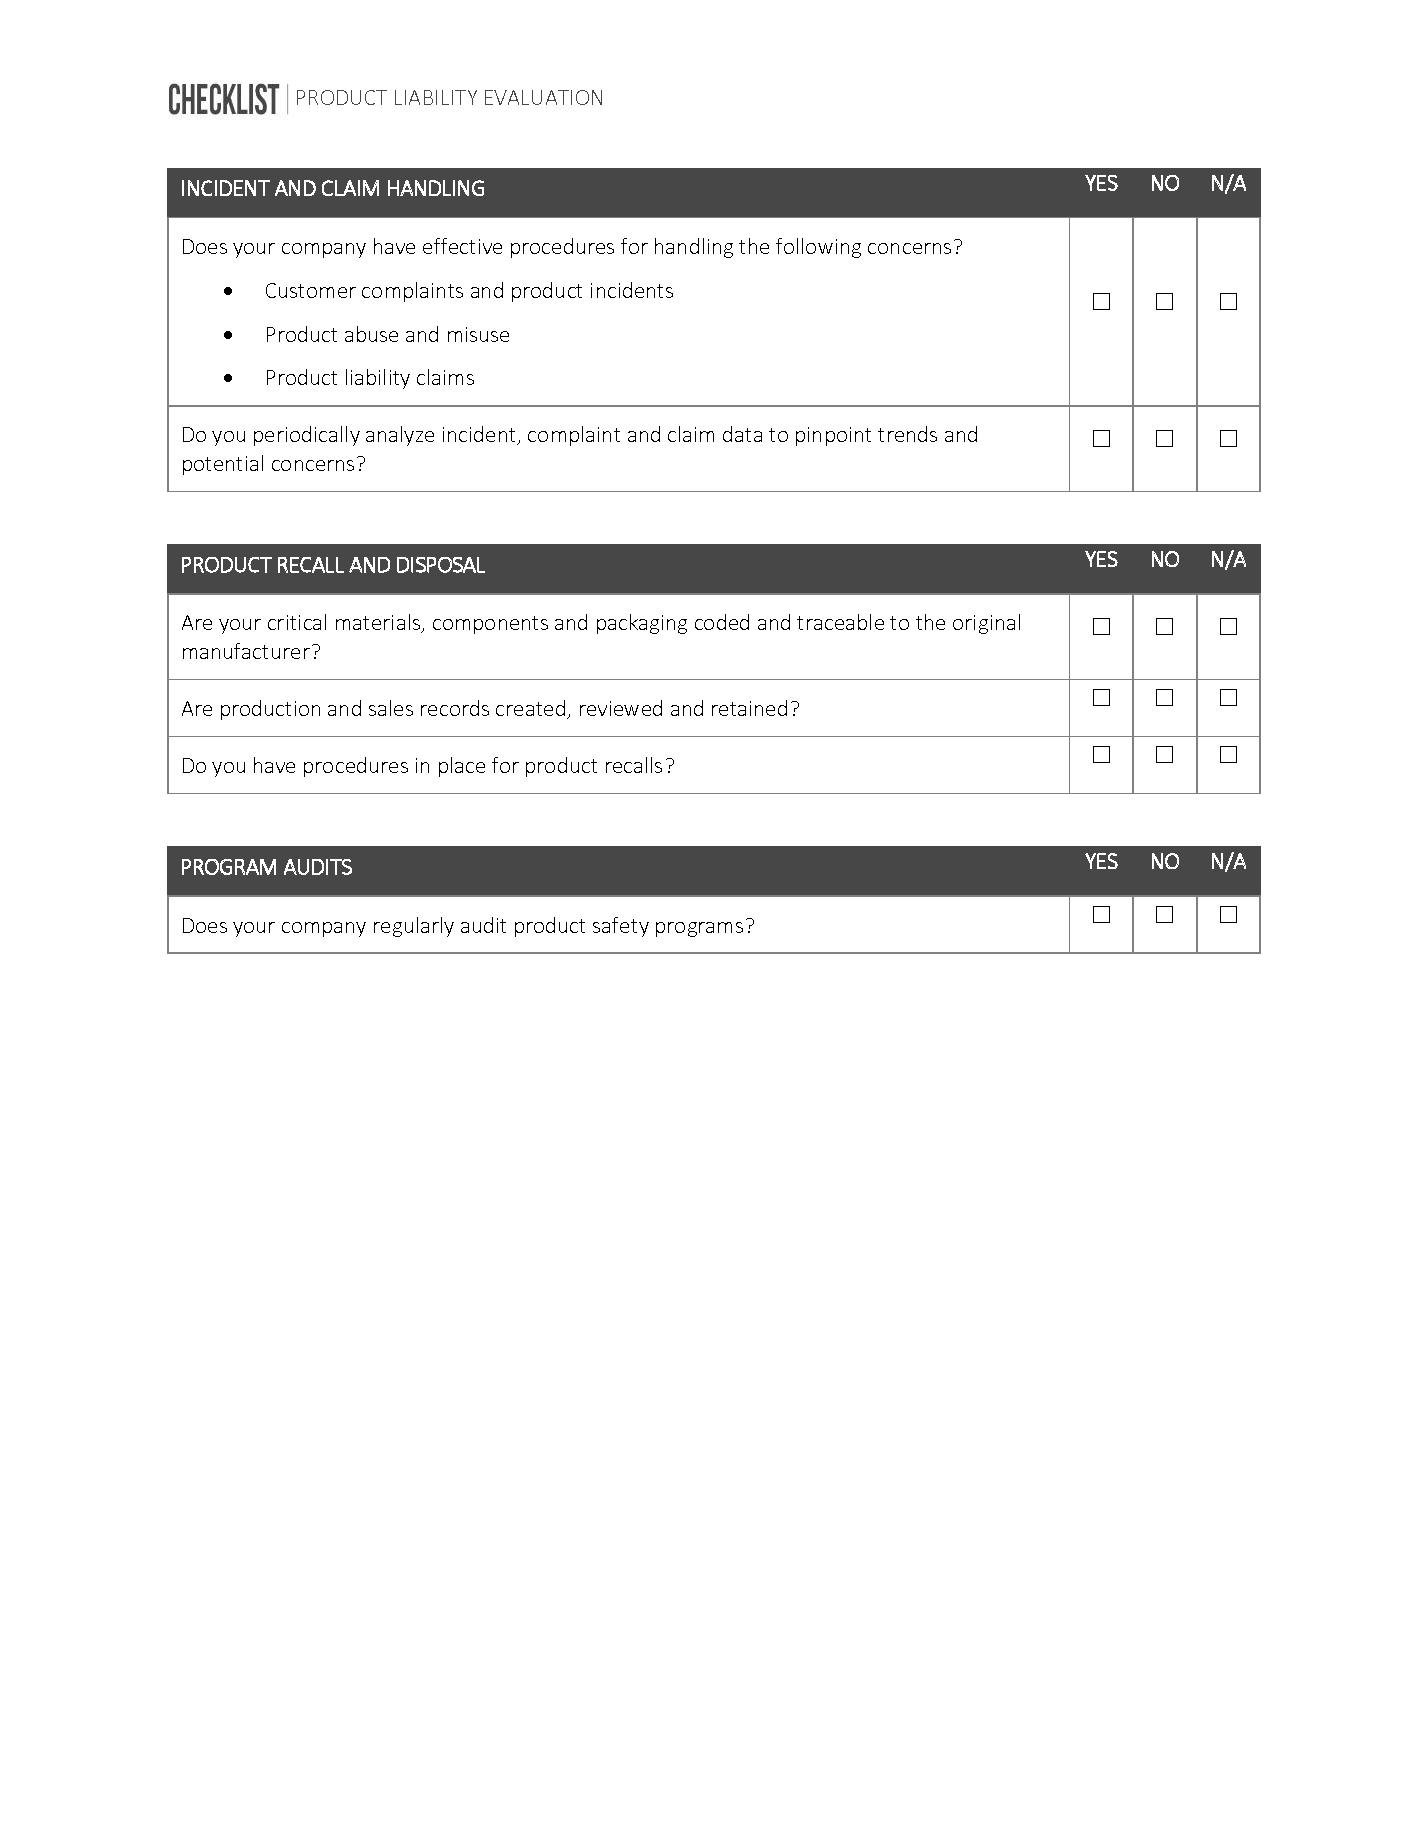 Product Liability Evaluation Checklist Page 3